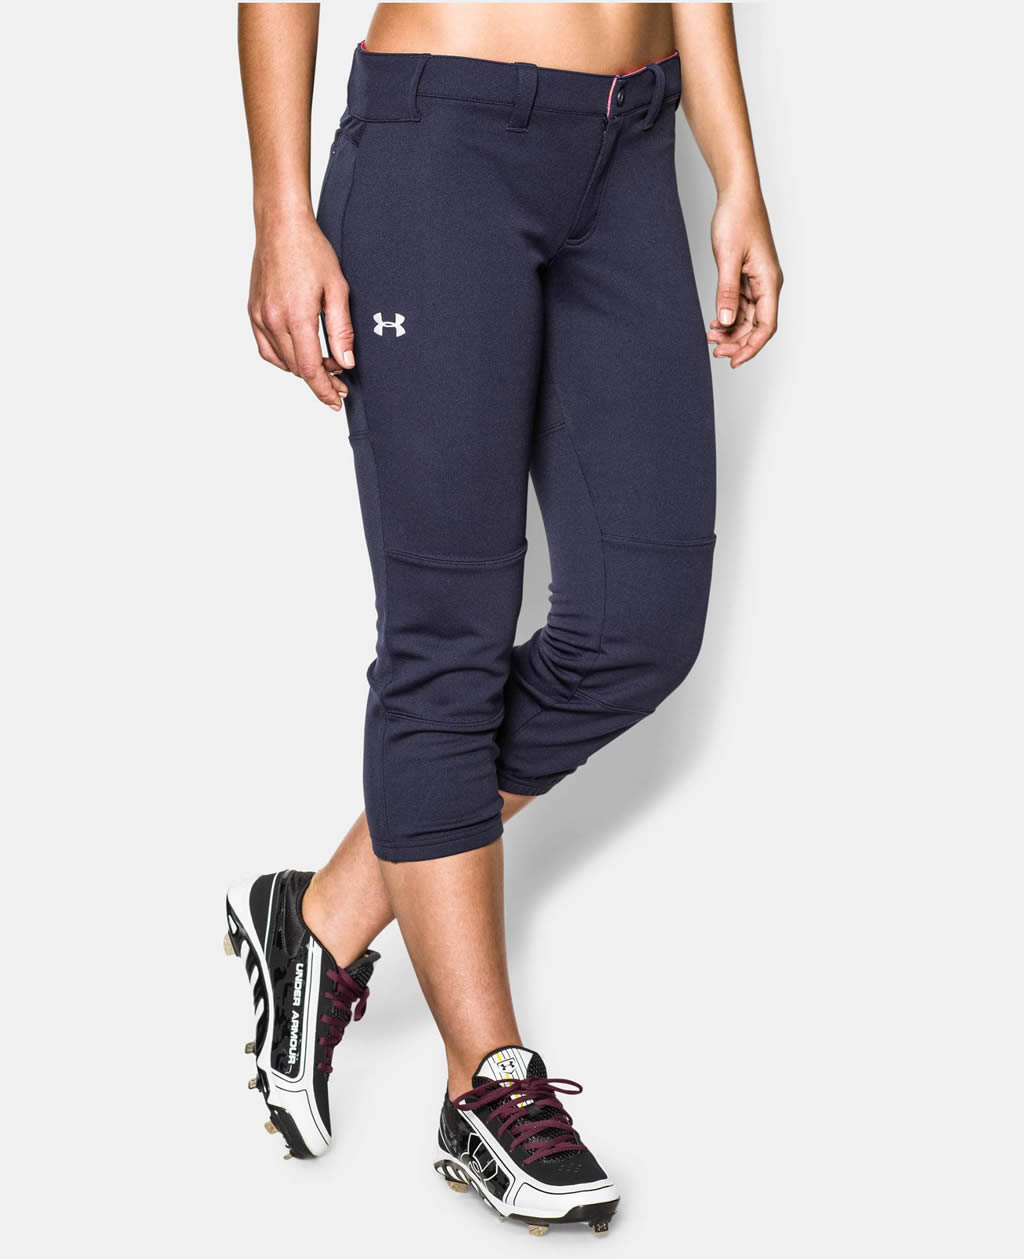 Navy Women's Strike Zone Pant By Under Armour